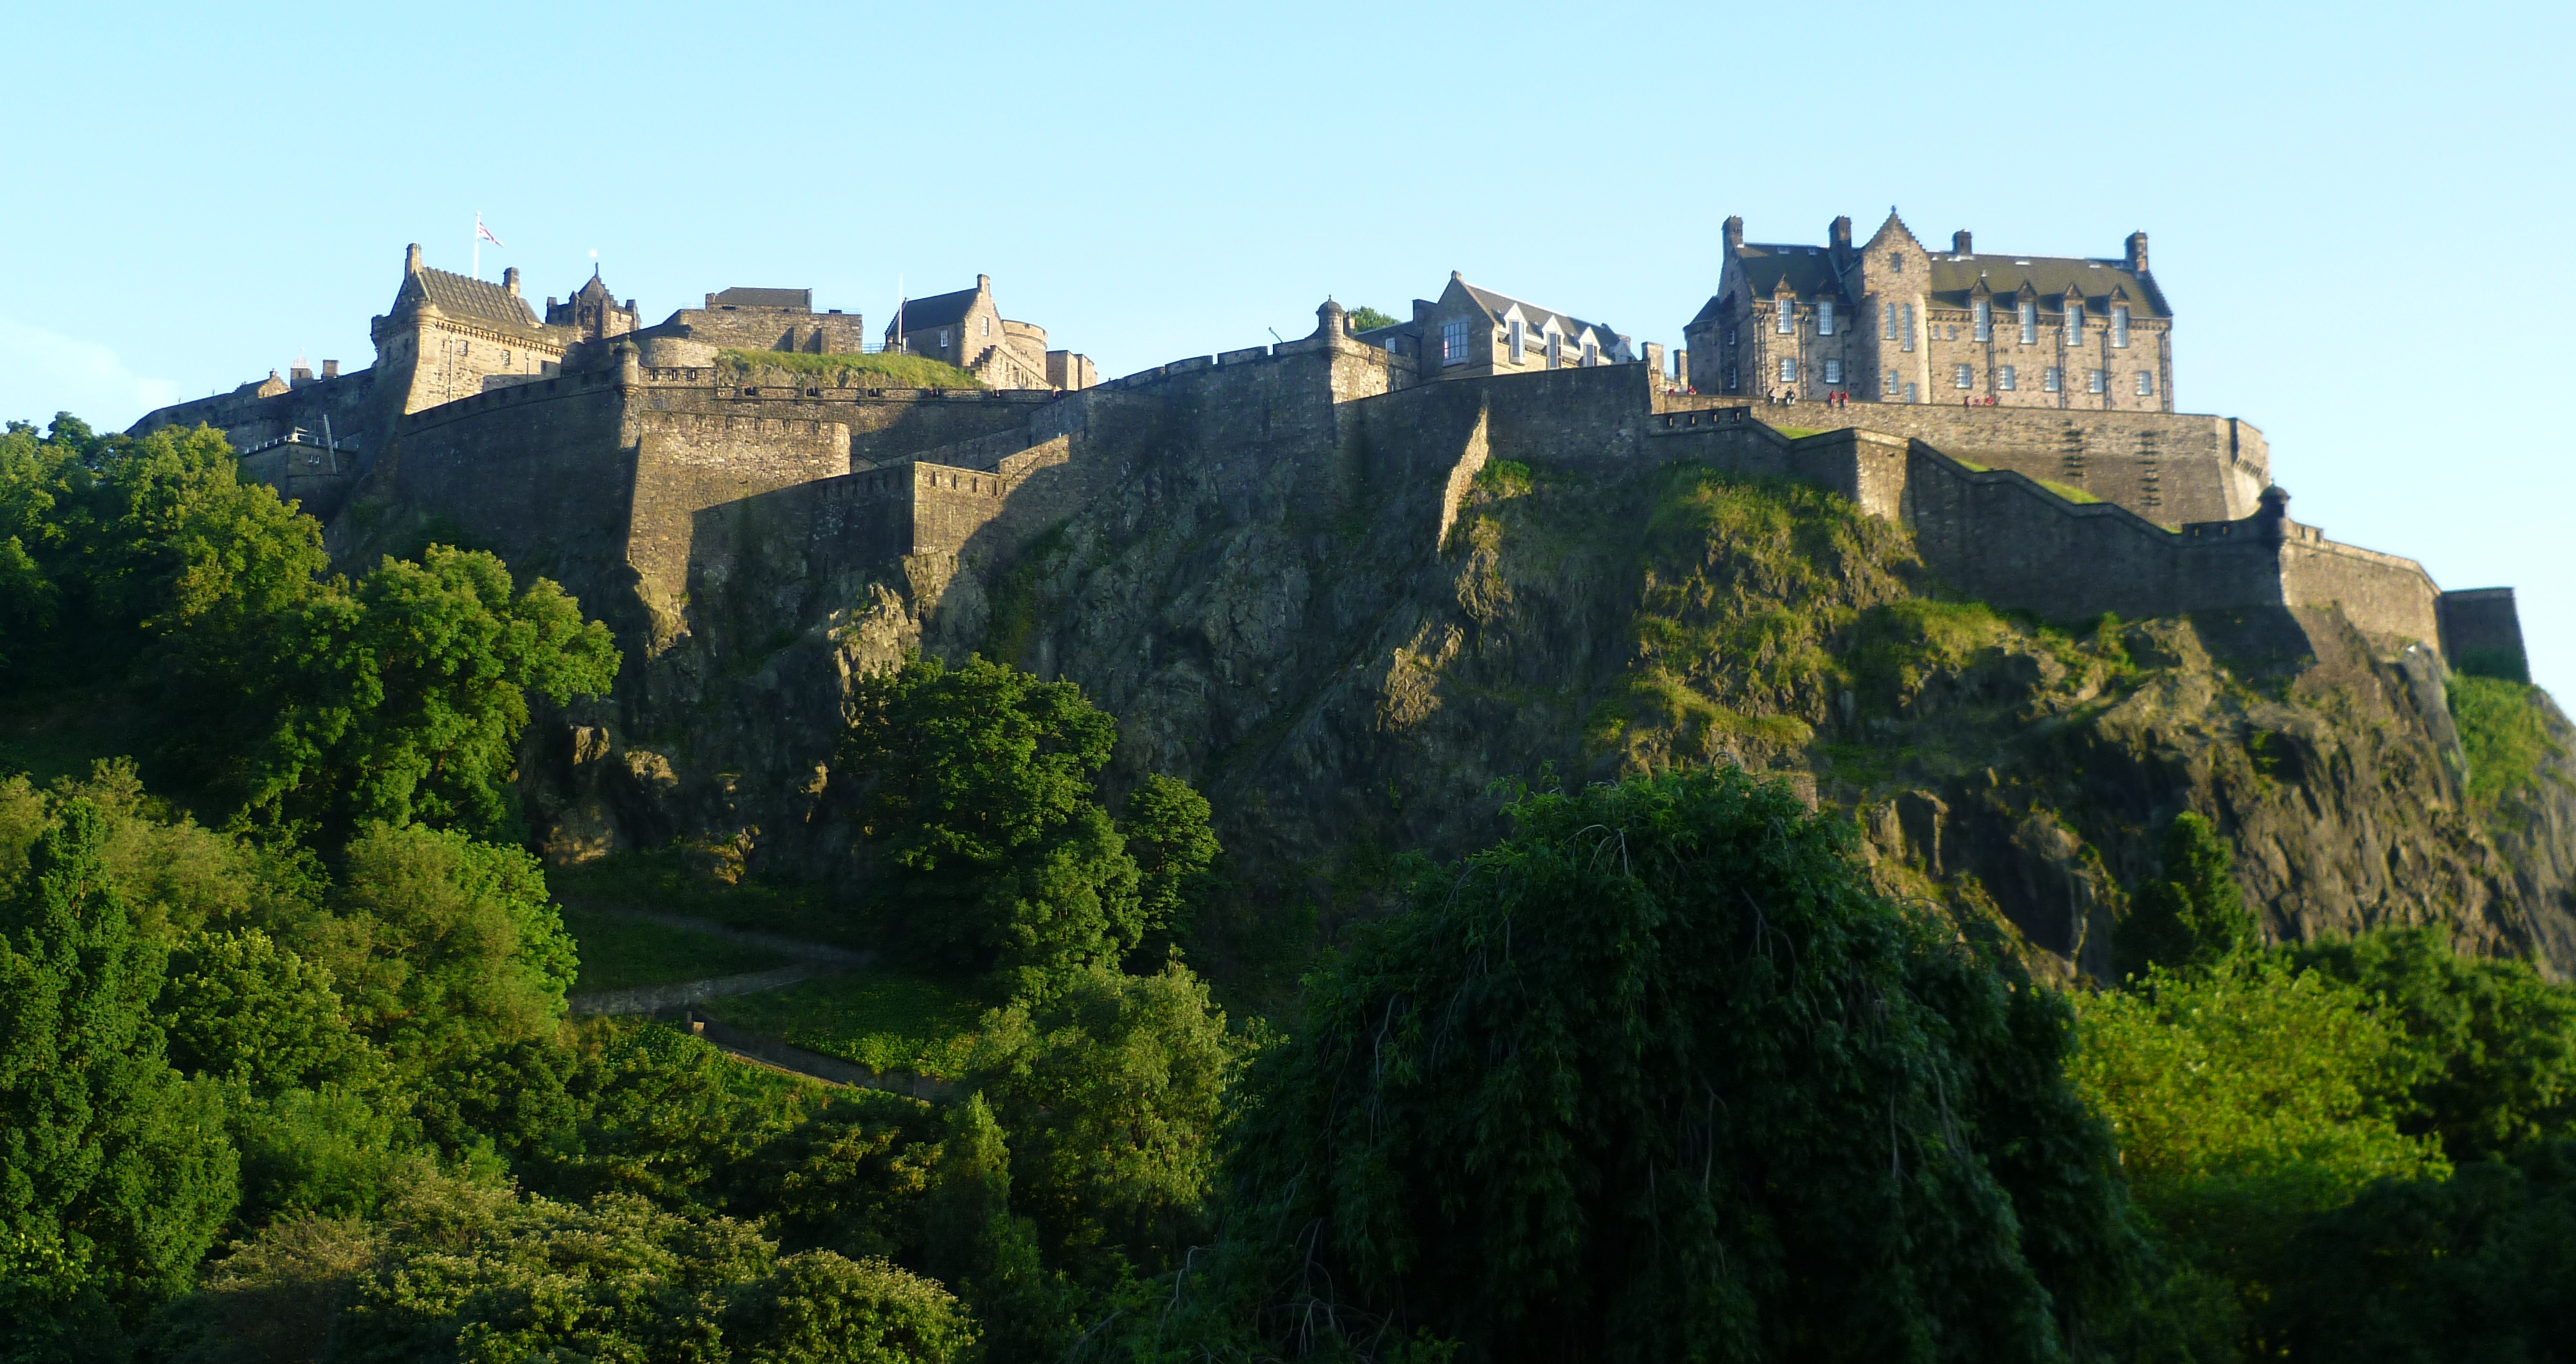 Curtis's Blog: A day off in Edinburgh, what to do?